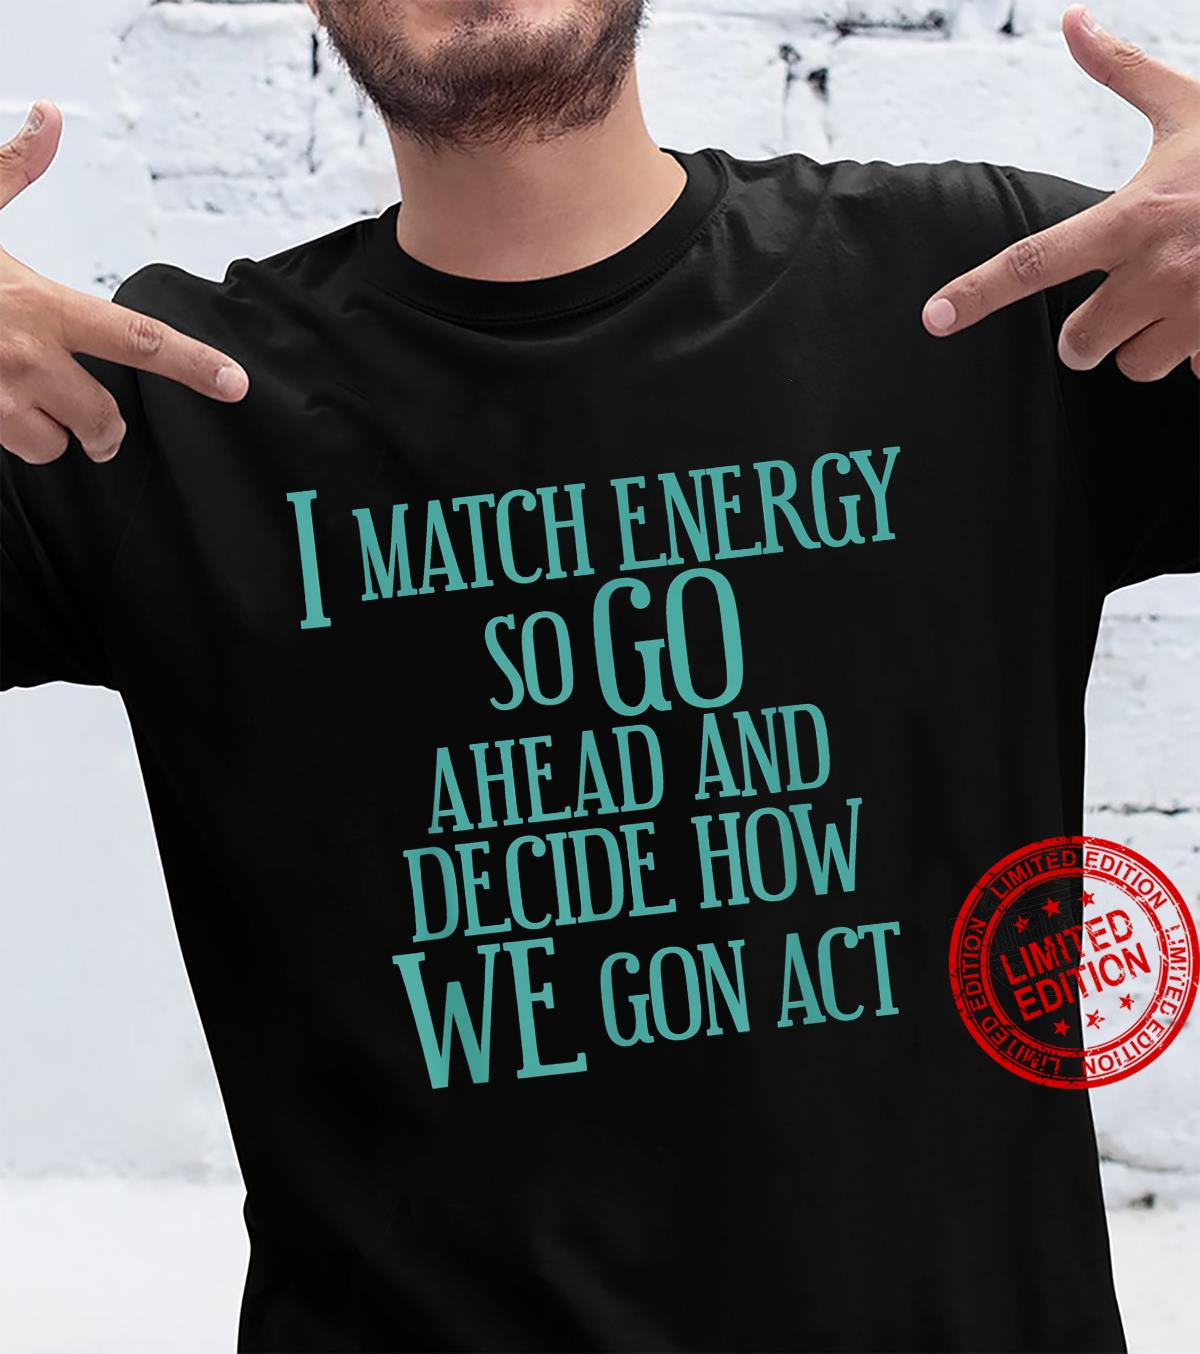 I match energy, so go ahead and decide how we gon' act Shirt